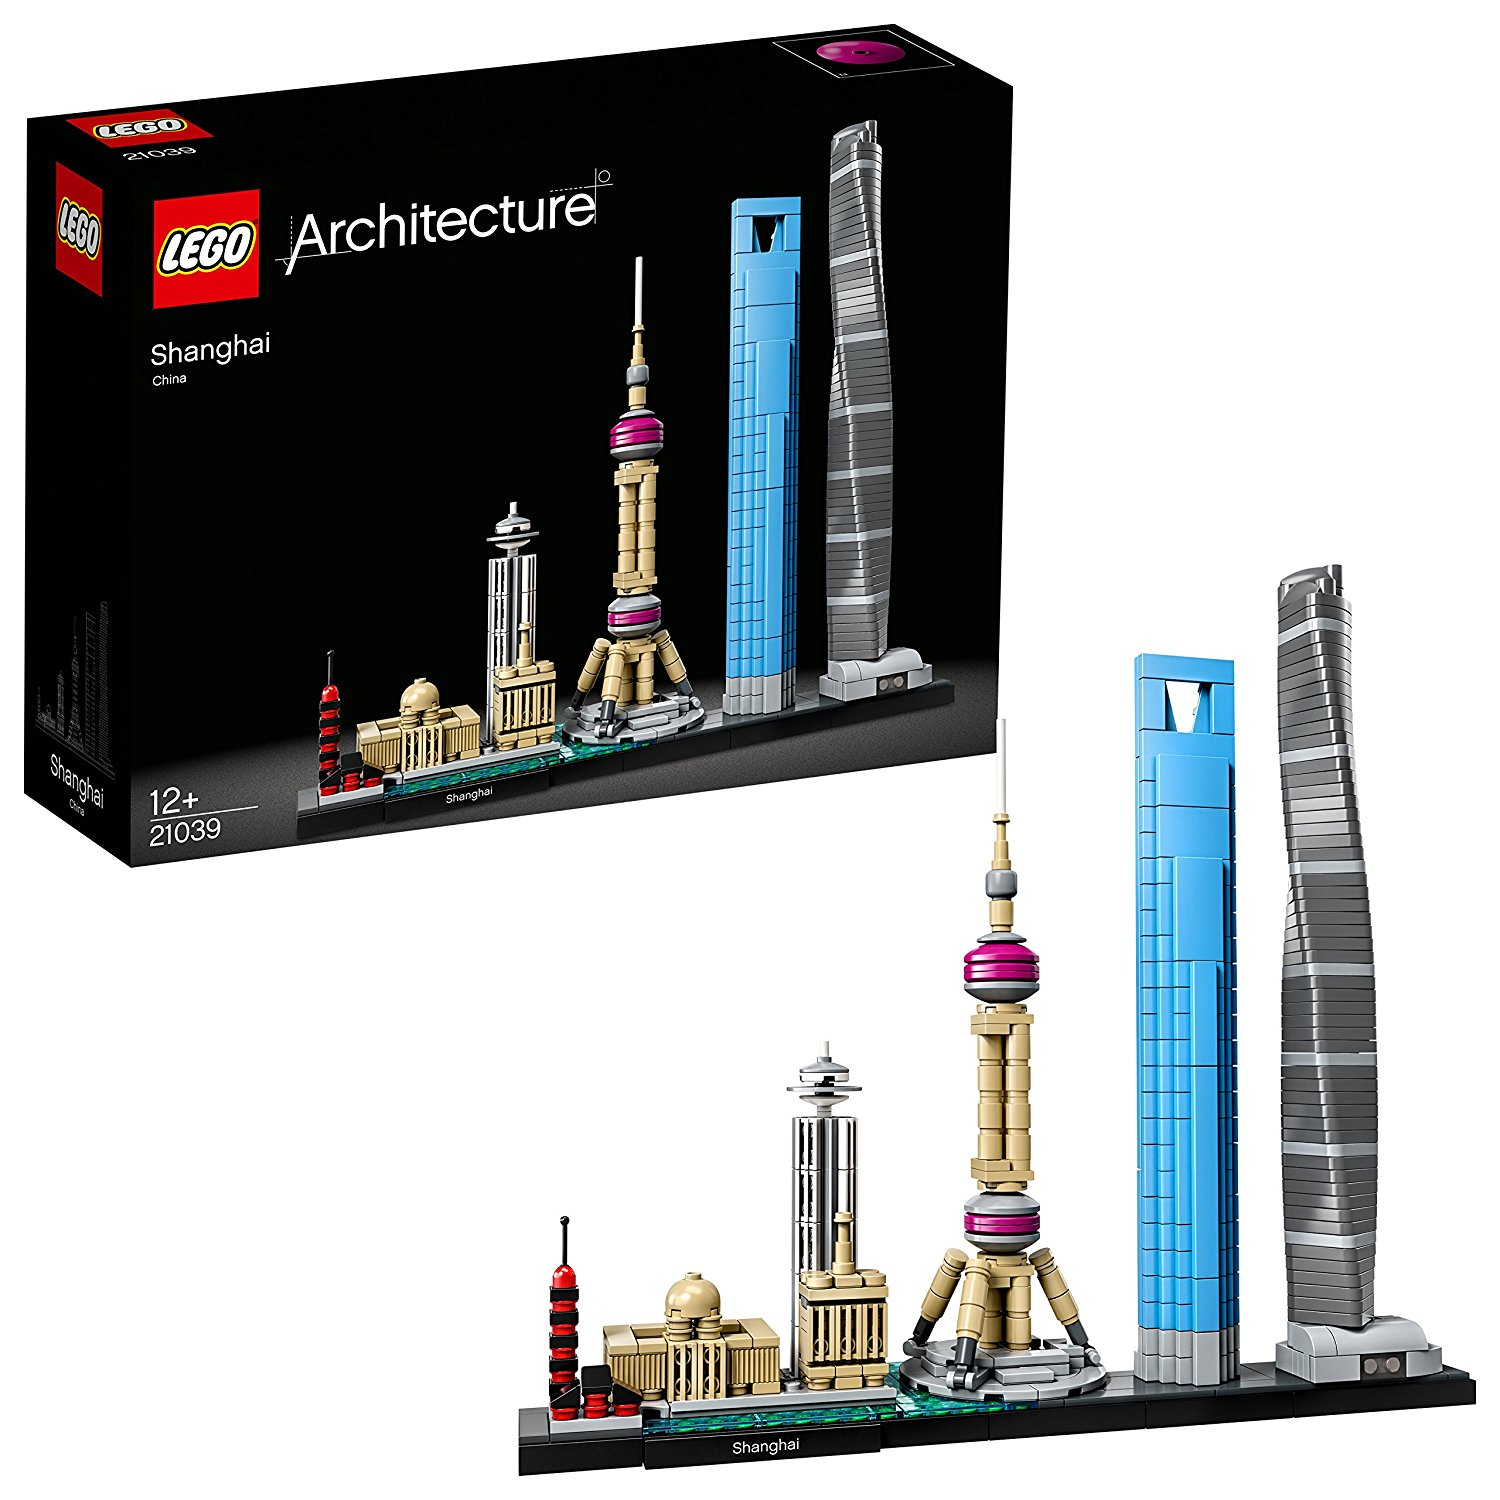 LEGO - Architecture - Jeu de Construction - Shanghai